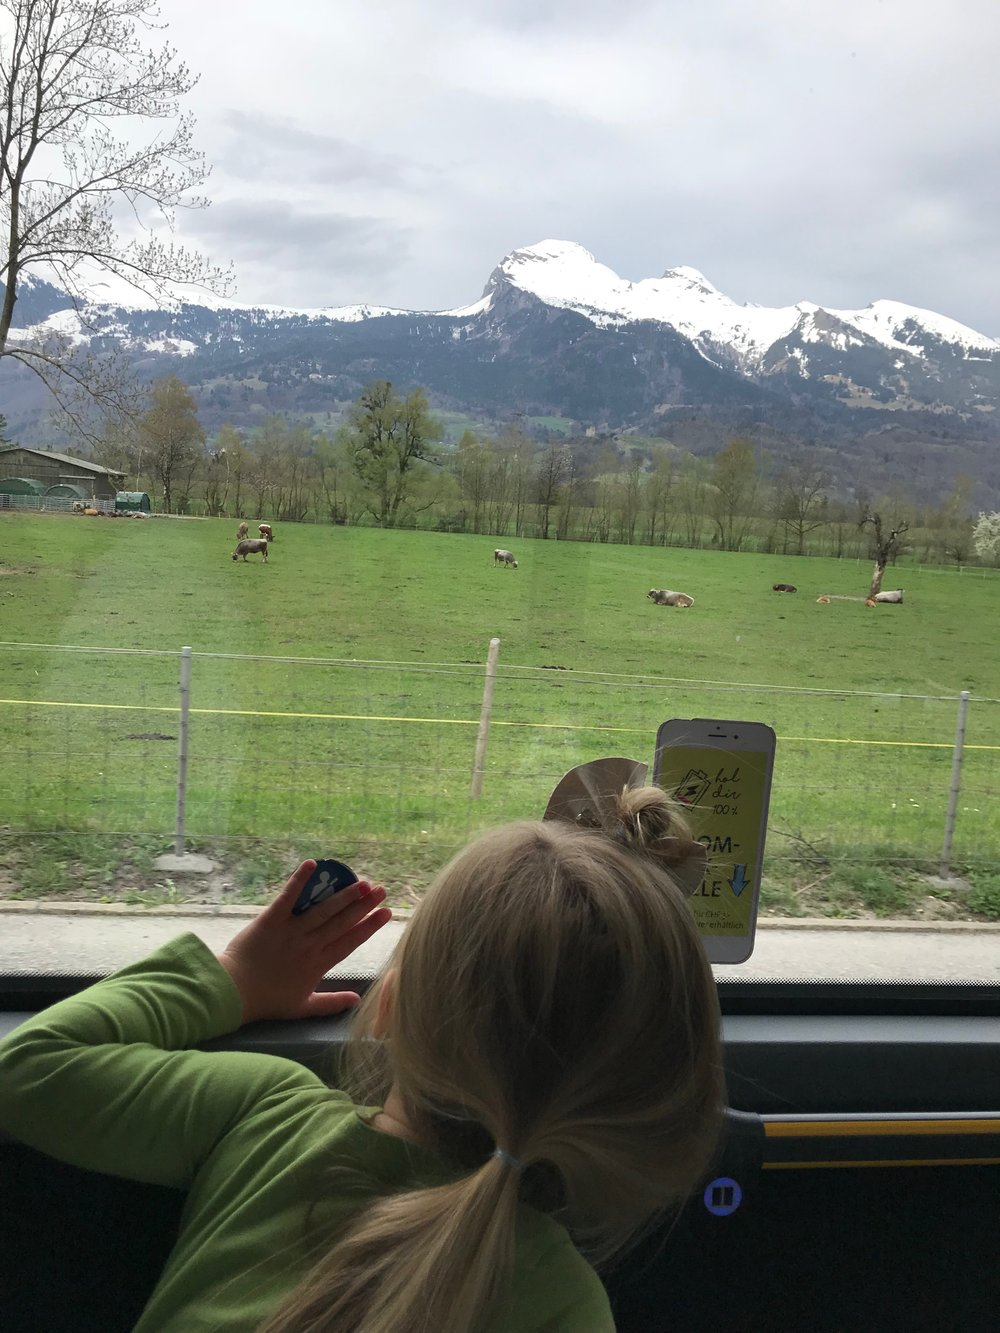 Views in Liechtenstein from the BUS which was FREE since we had a Swiss Rail pass and there are no trains in this country